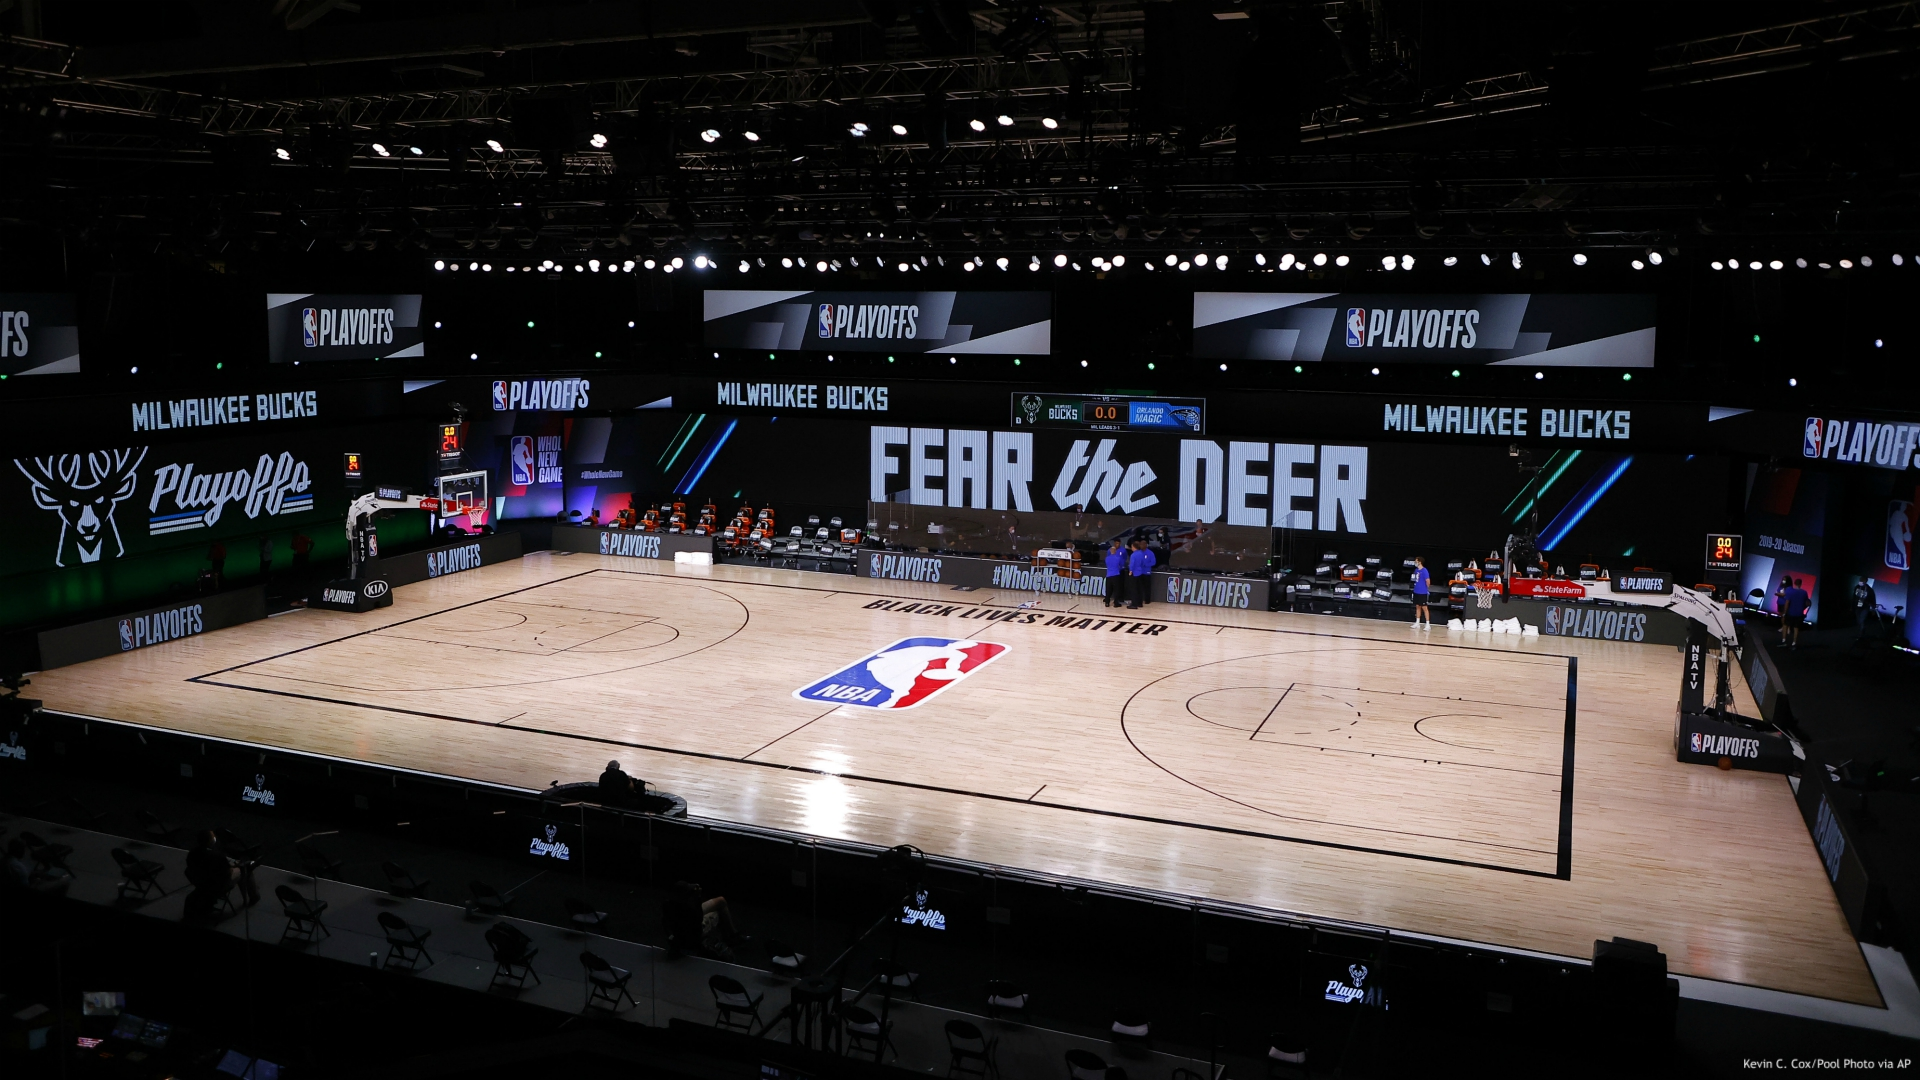 eferees huddle on an empty court at game time of a scheduled game between the Milwaukee Bucks and the Orlando Magic for Game 5 of an NBA basketball first-round playoff series, Wednesday, Aug. 26, 2020, in Lake Buena Vista, Fla. (Kevin C. Cox/Pool Photo via AP)